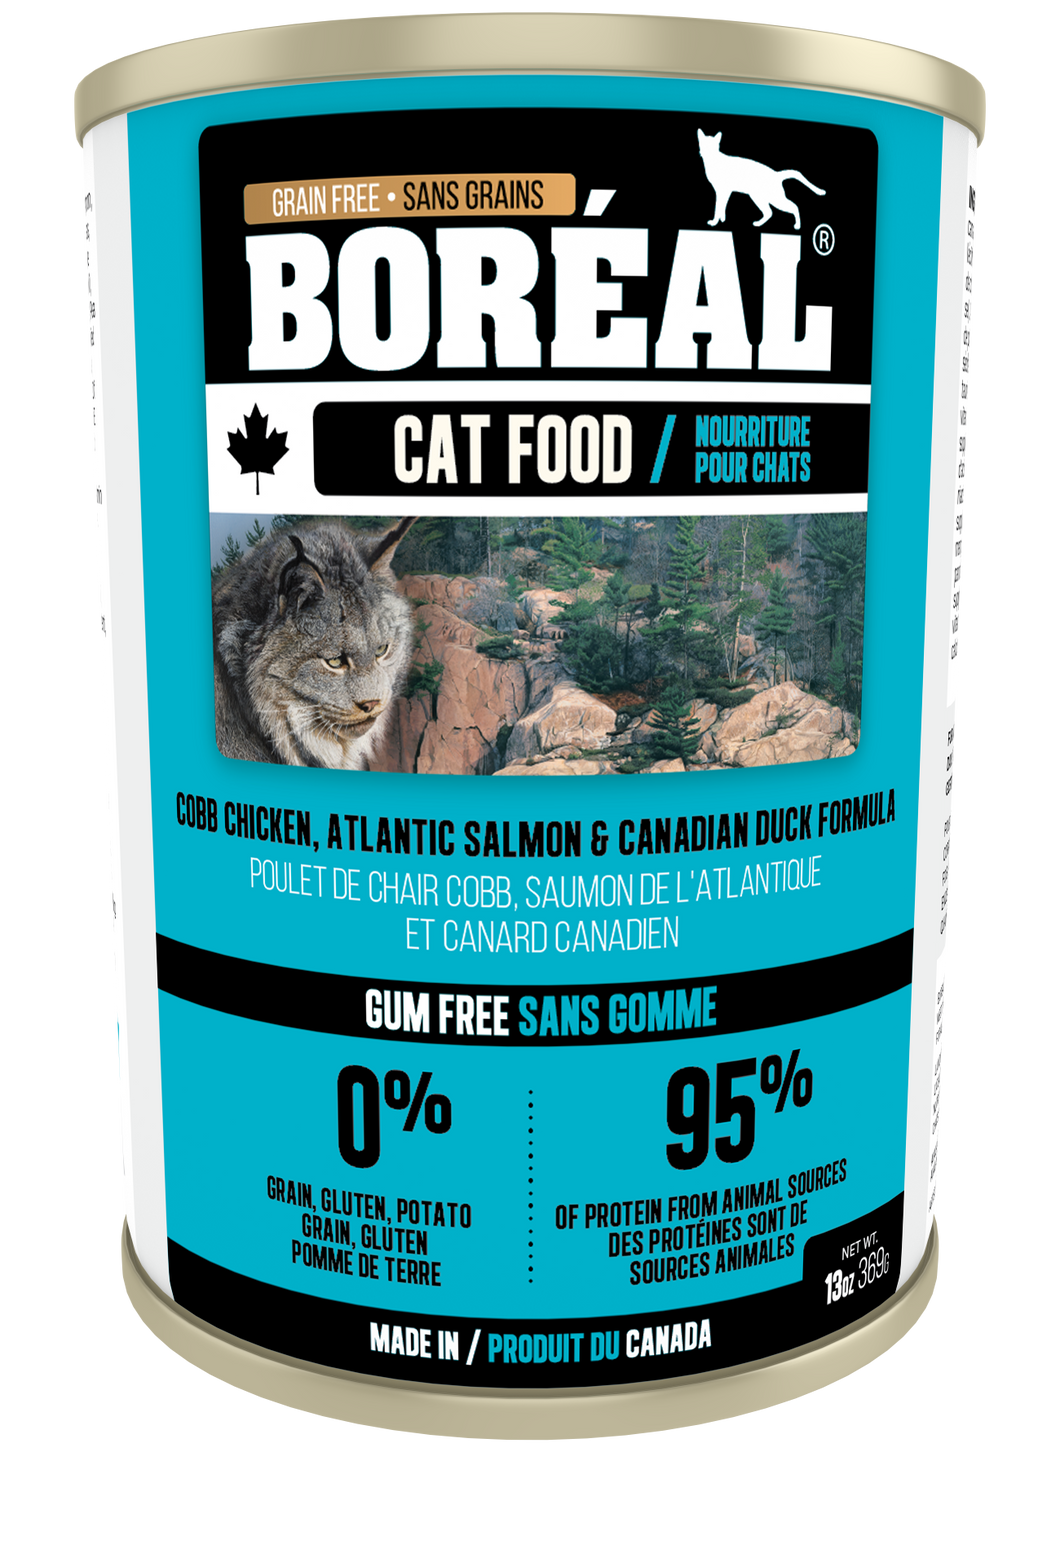 Boréal - Cobb Chicken, Canadian Duck & Atlantic Salmon Cat Food - Grain Free - Made in Canada